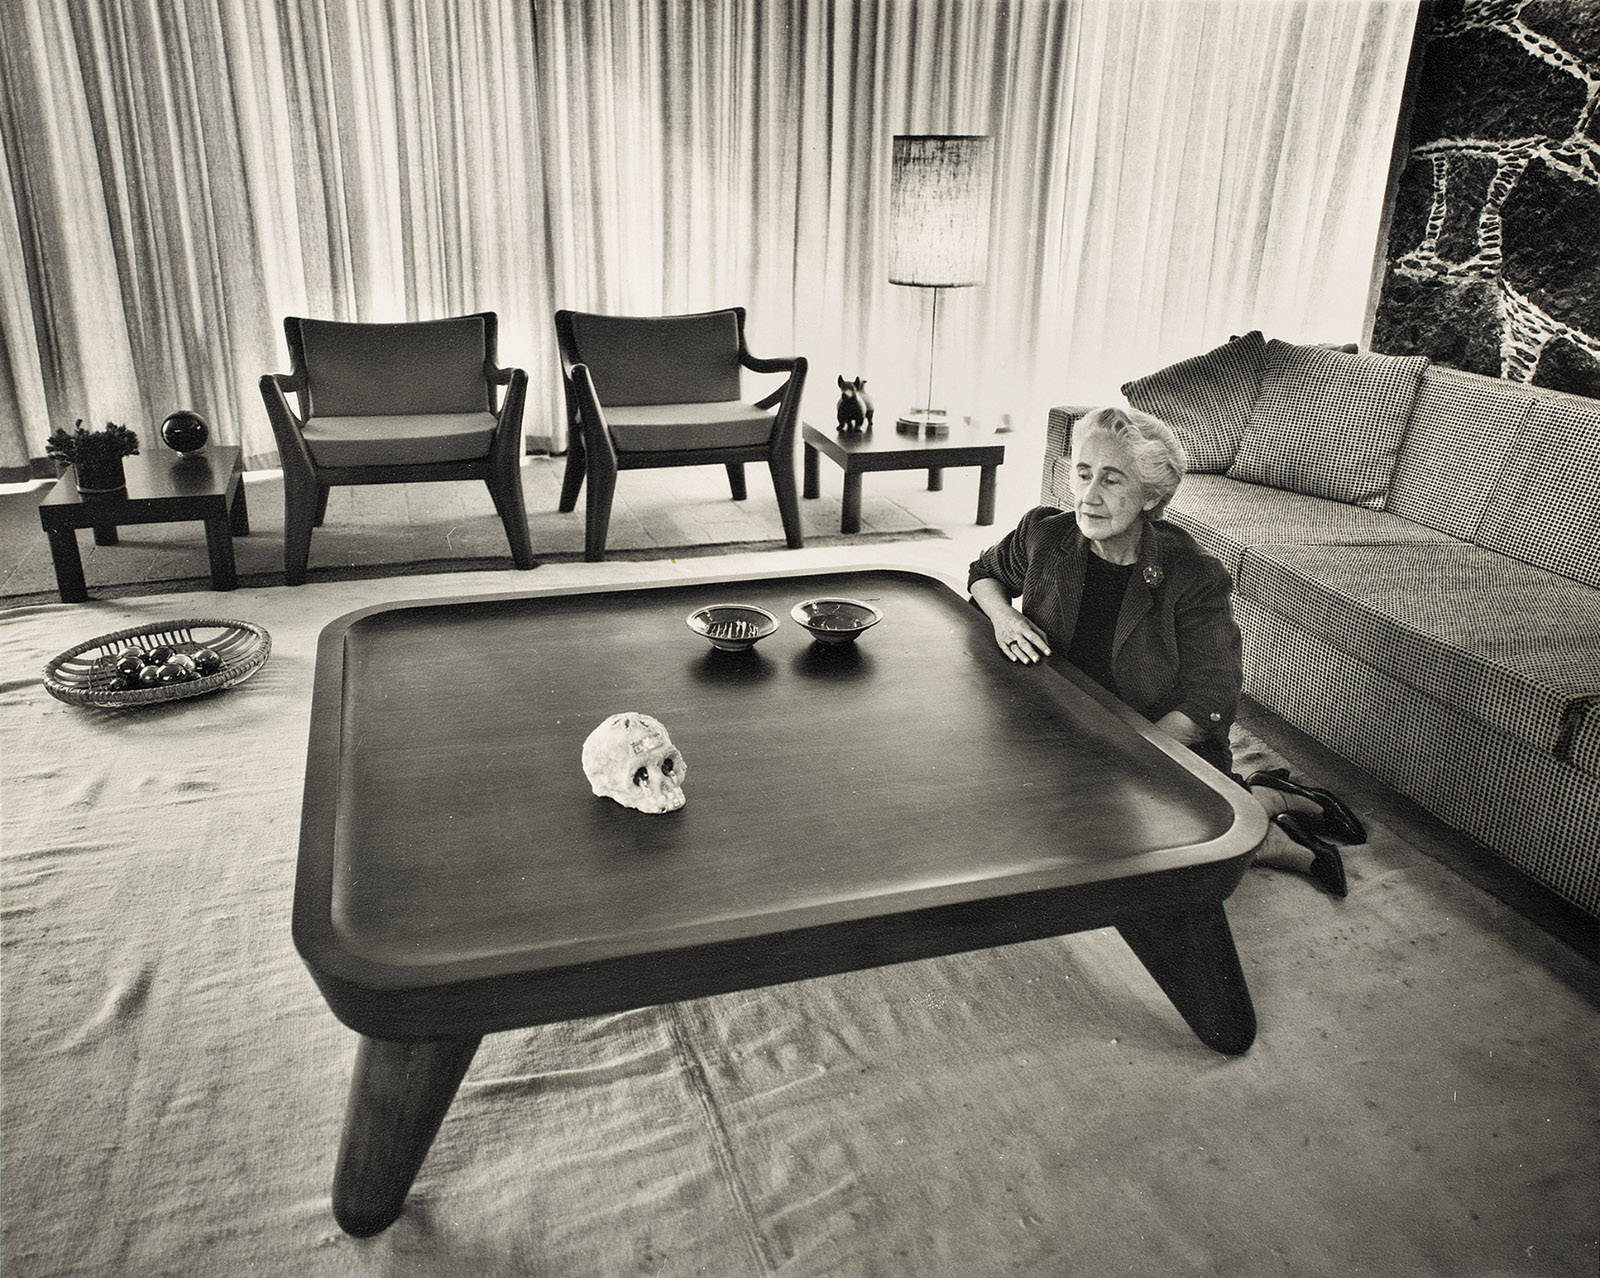 Clara Porset with the chairs and table she based on an ancient Totonac sculpture, circa 1952